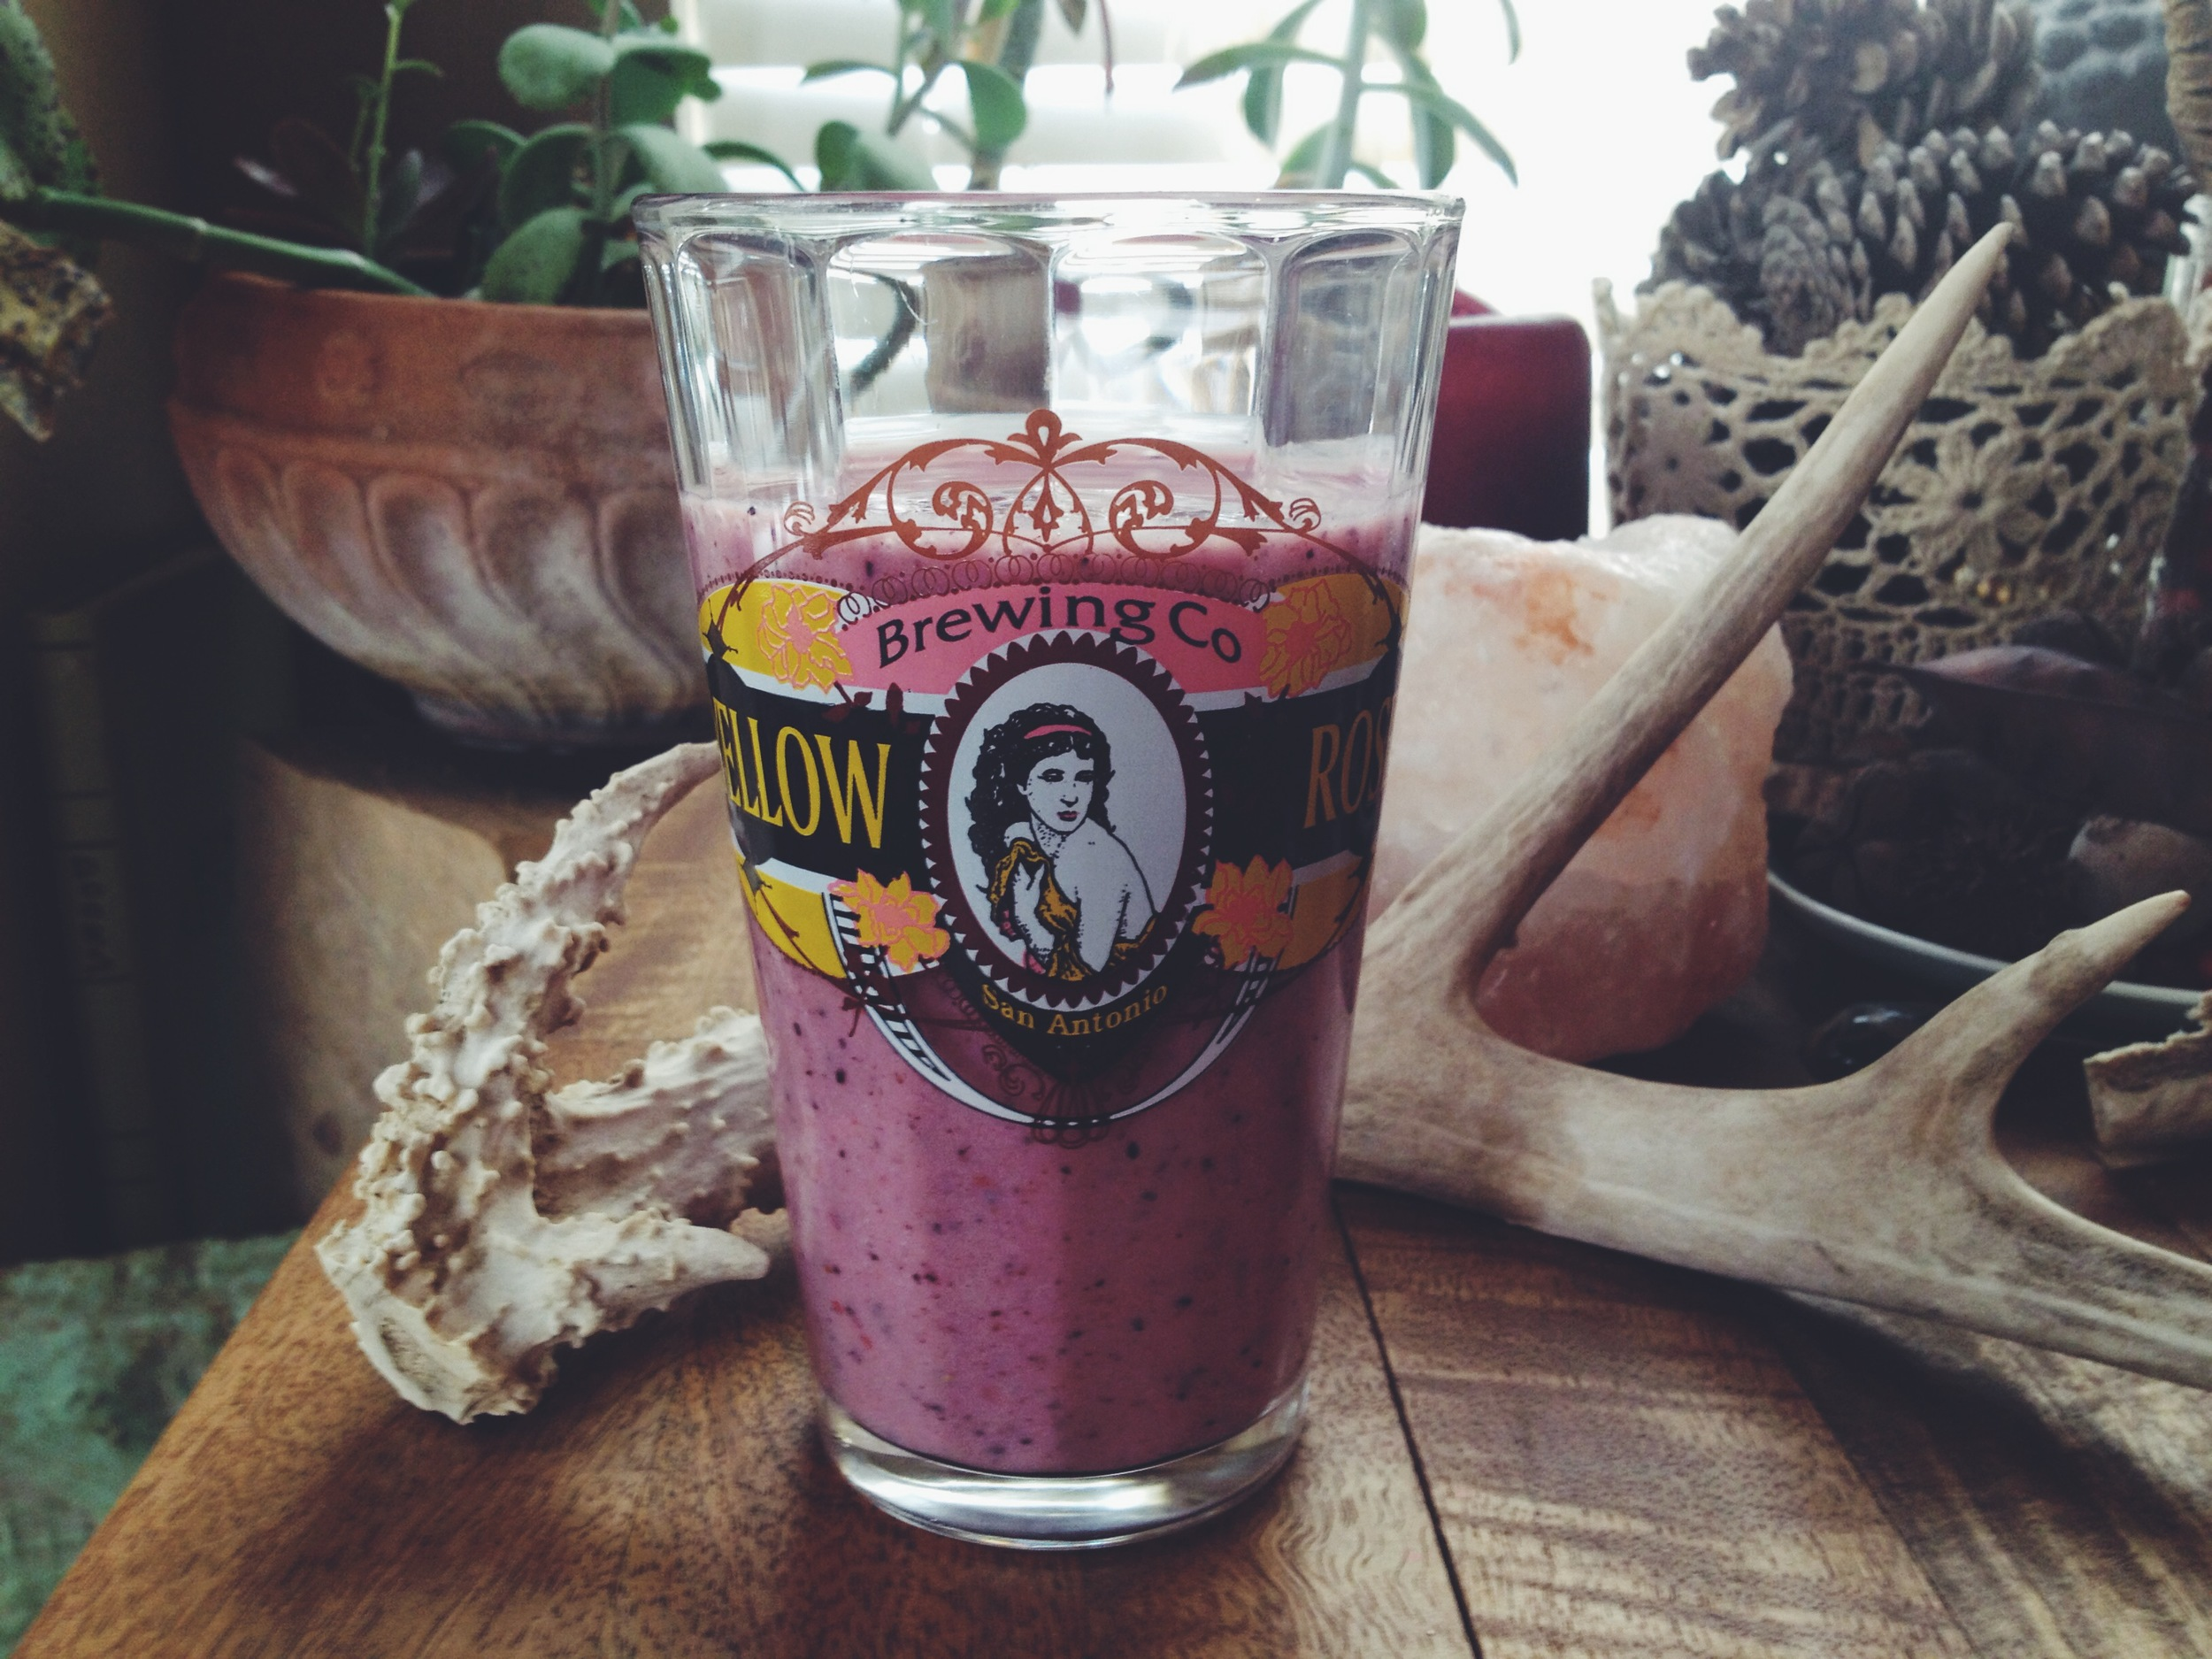 Shake via Roots & Feathers